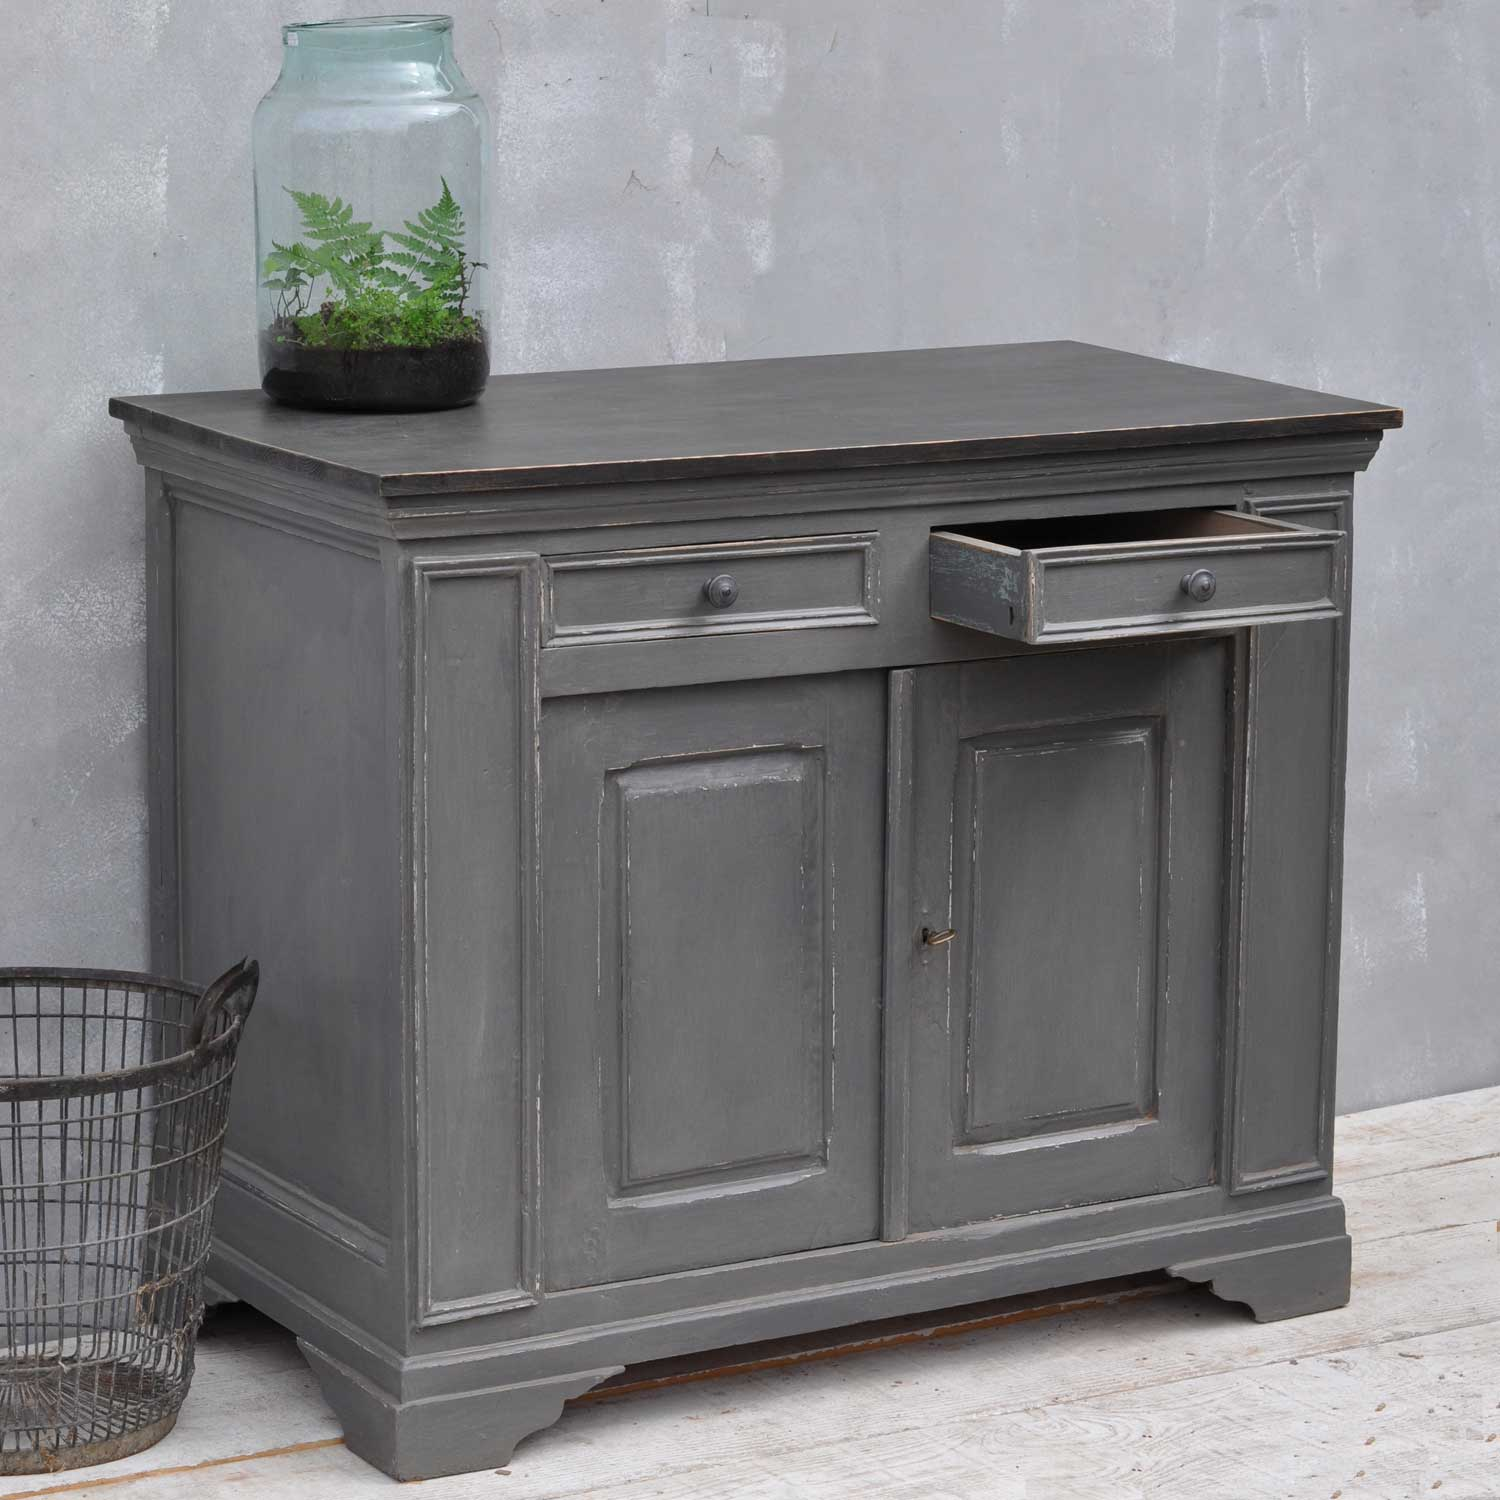 Vintage French Cupboard  Grey hand painted Cabinet  Home